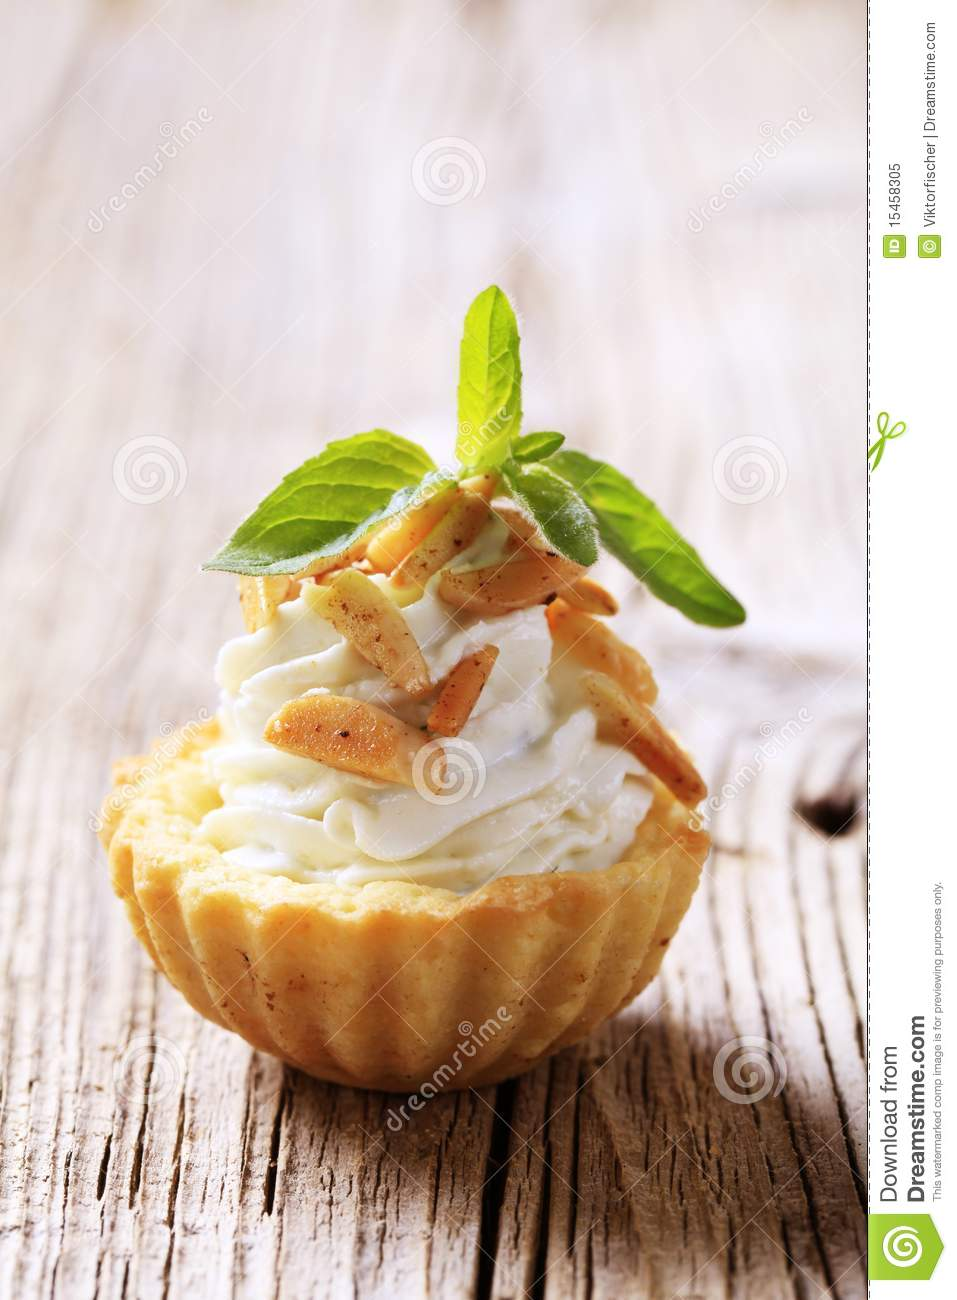 Canape royalty free stock photo image 15458305 for Canape fillings